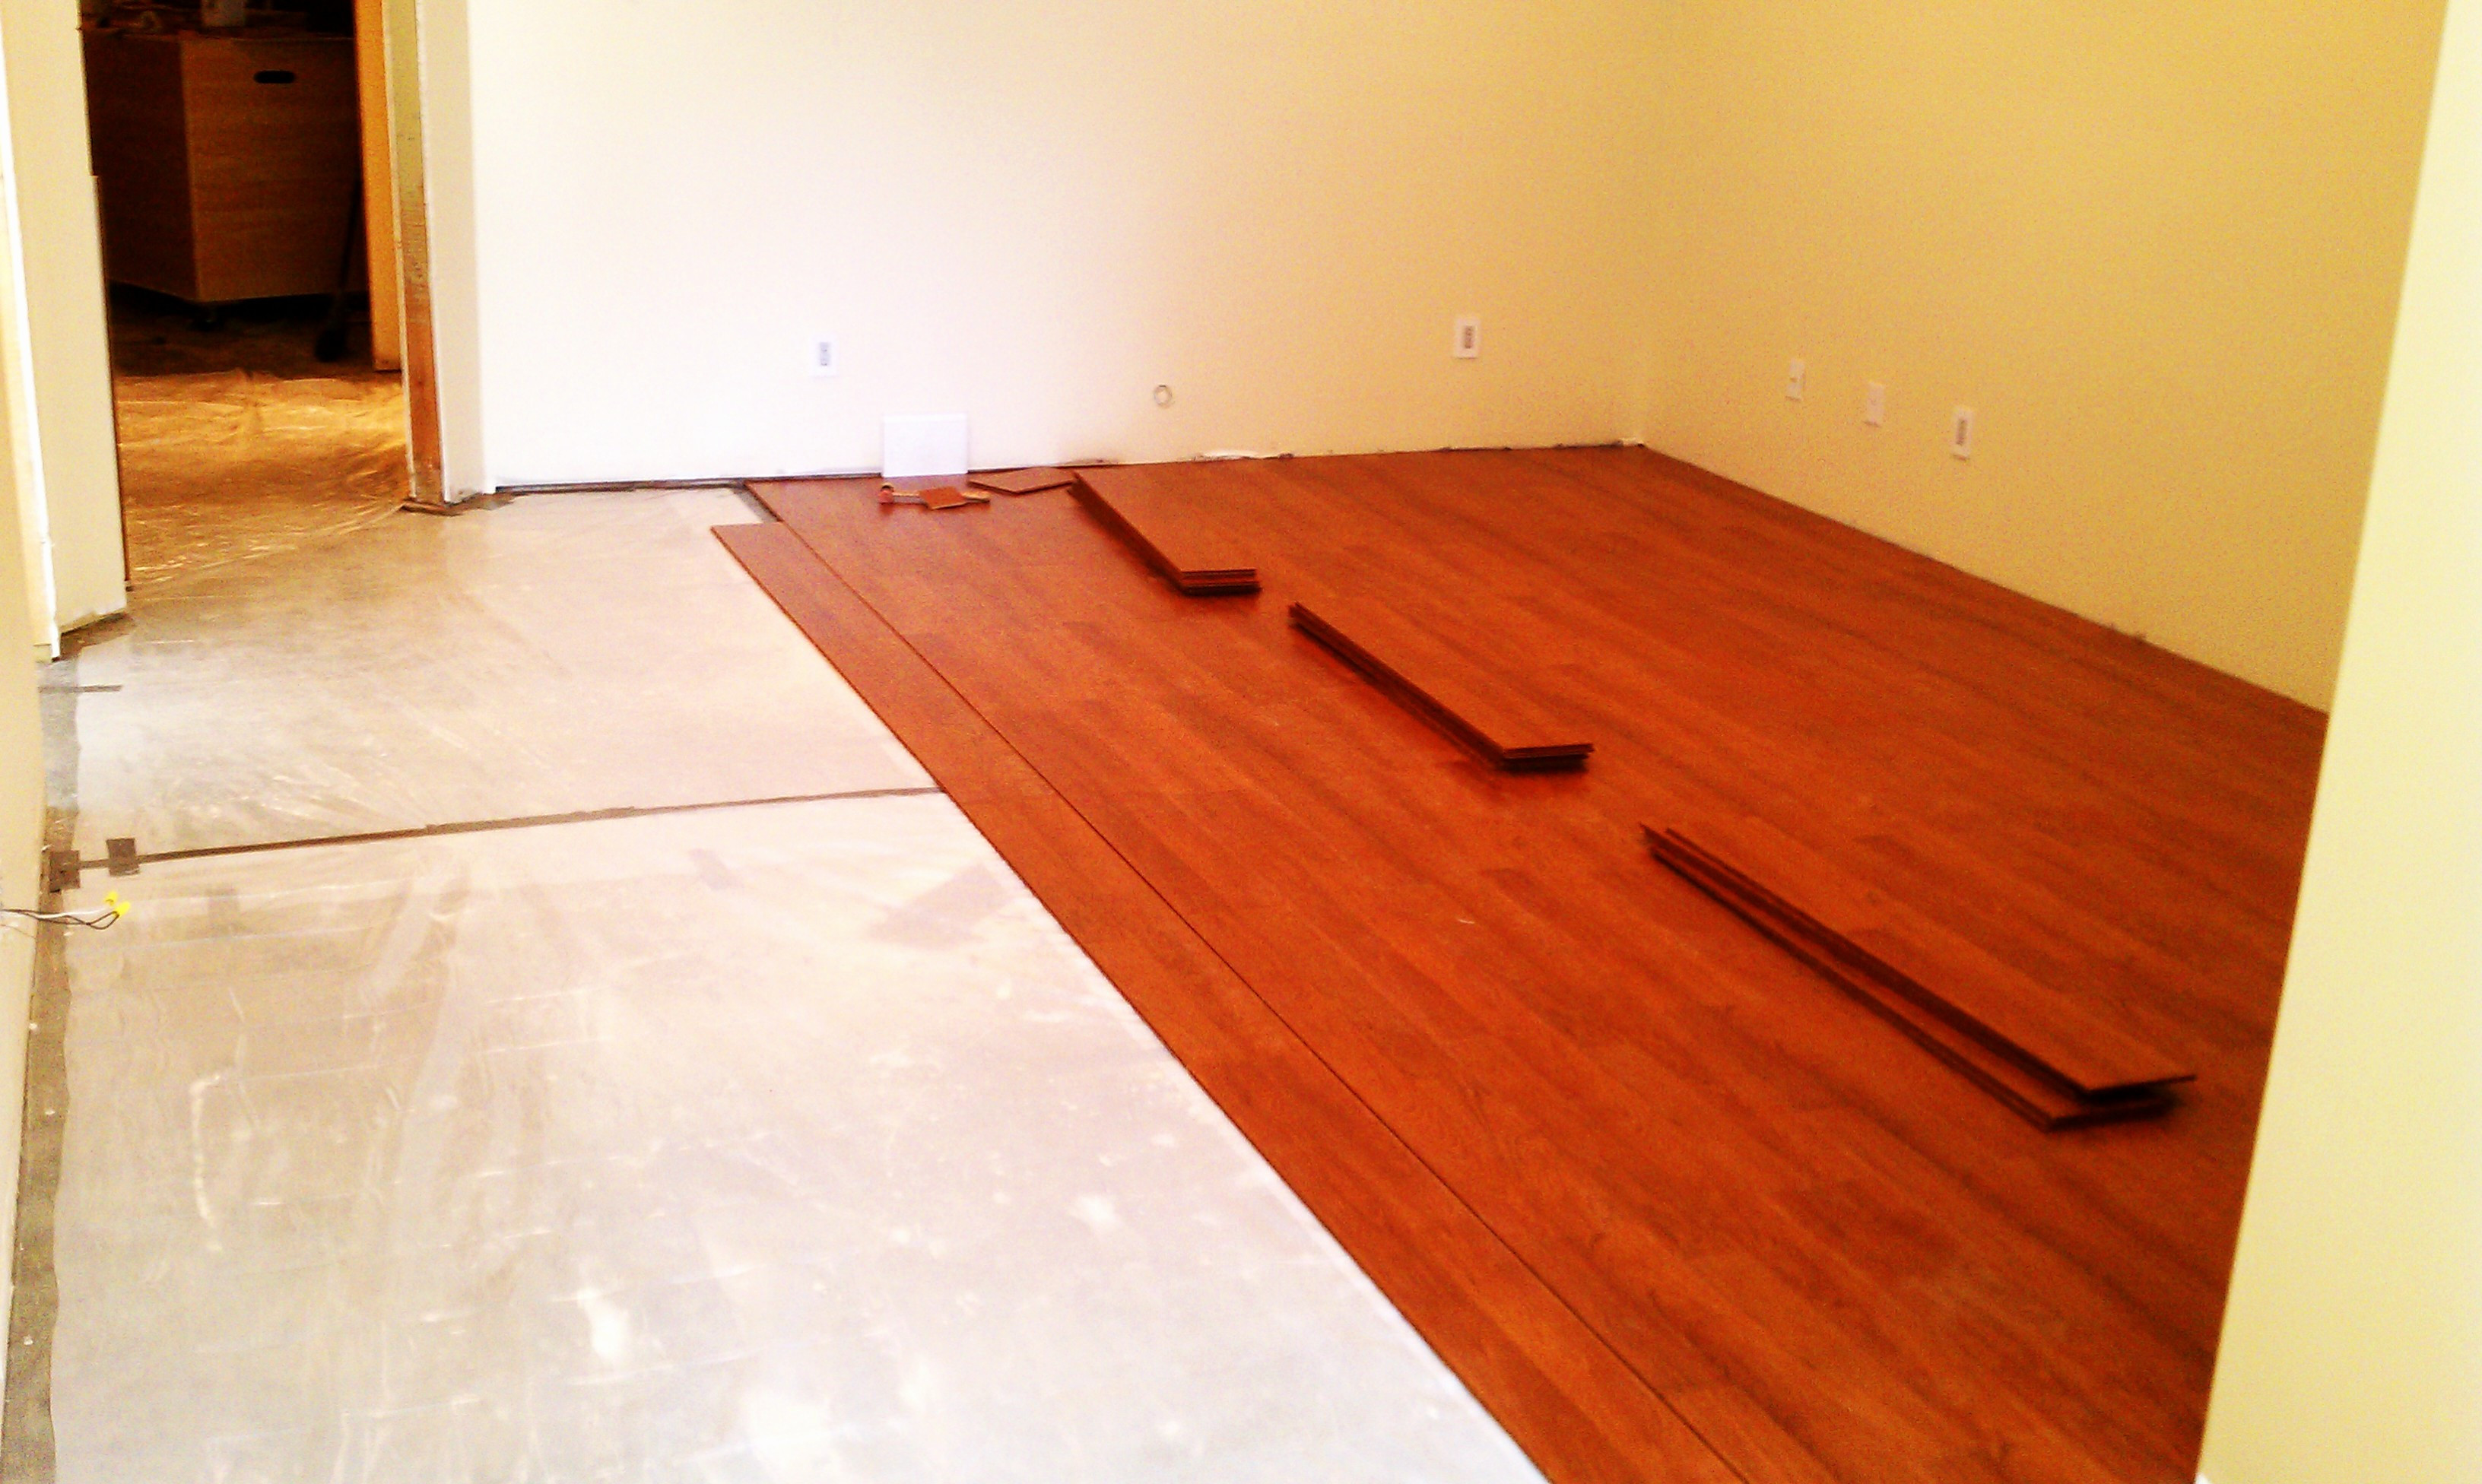 Refinishing Engineered Hardwood Floors Cost Of 14 New Average Cost for Hardwood Floors Stock Dizpos Com Inside Average Cost for Hardwood Floors Fresh 50 New Average Cost to Refinish Hardwood Floors 50 S